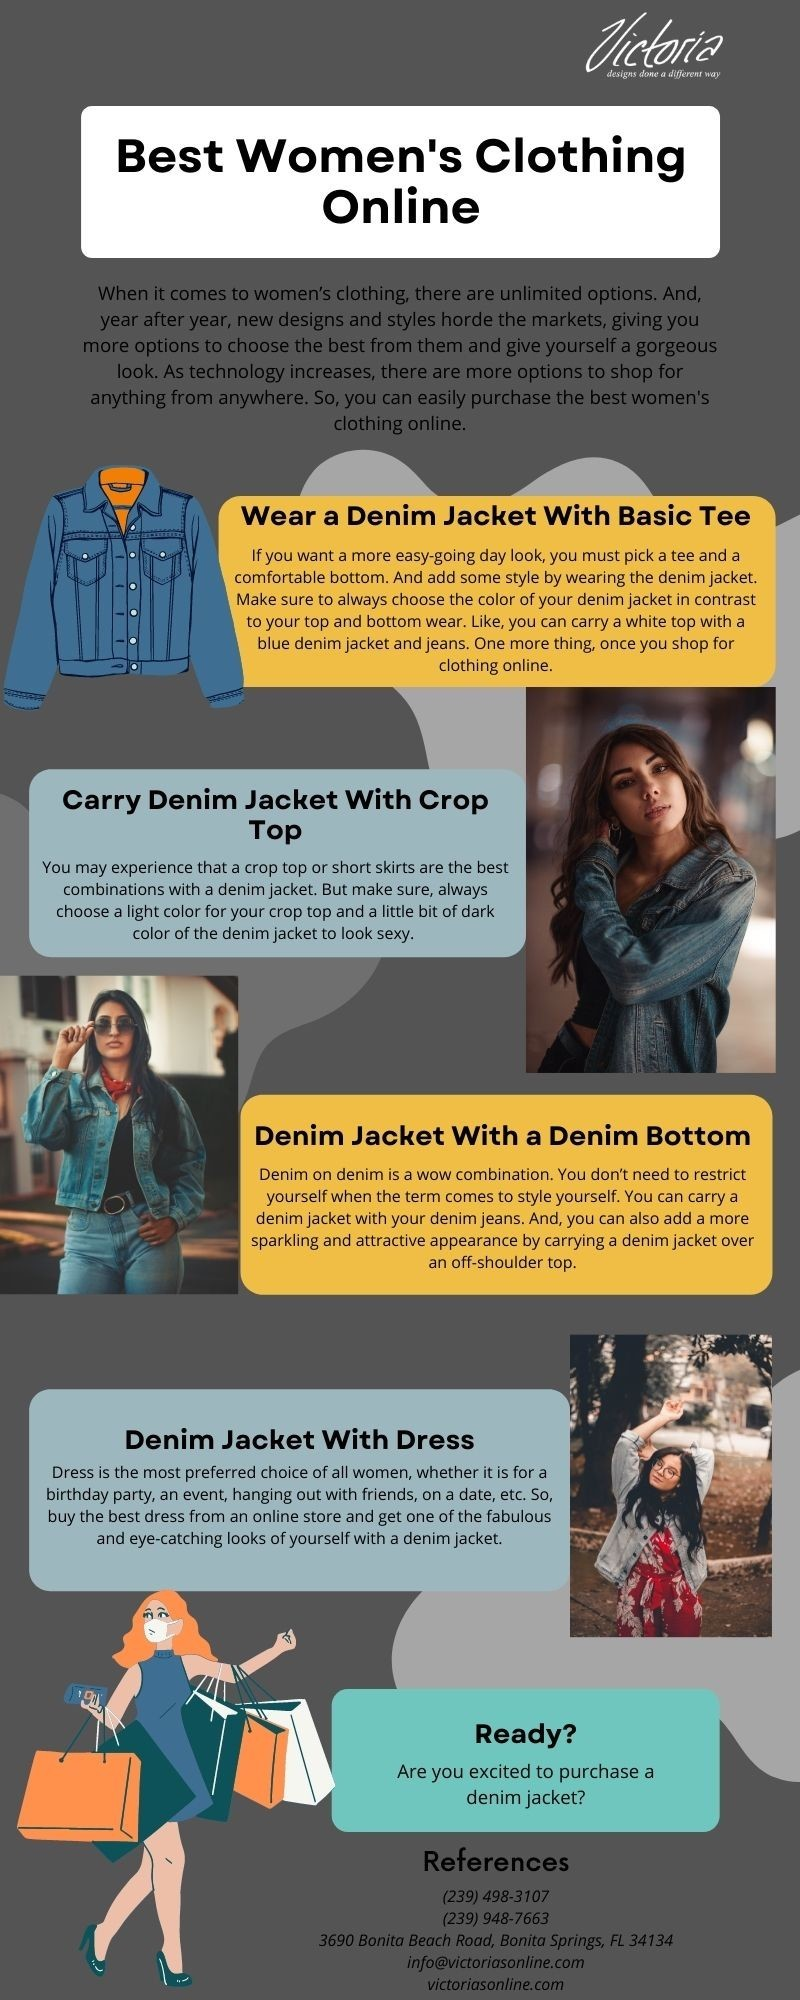 Order Denim Jackets at Women's Clothing Online Store - Victoria Place